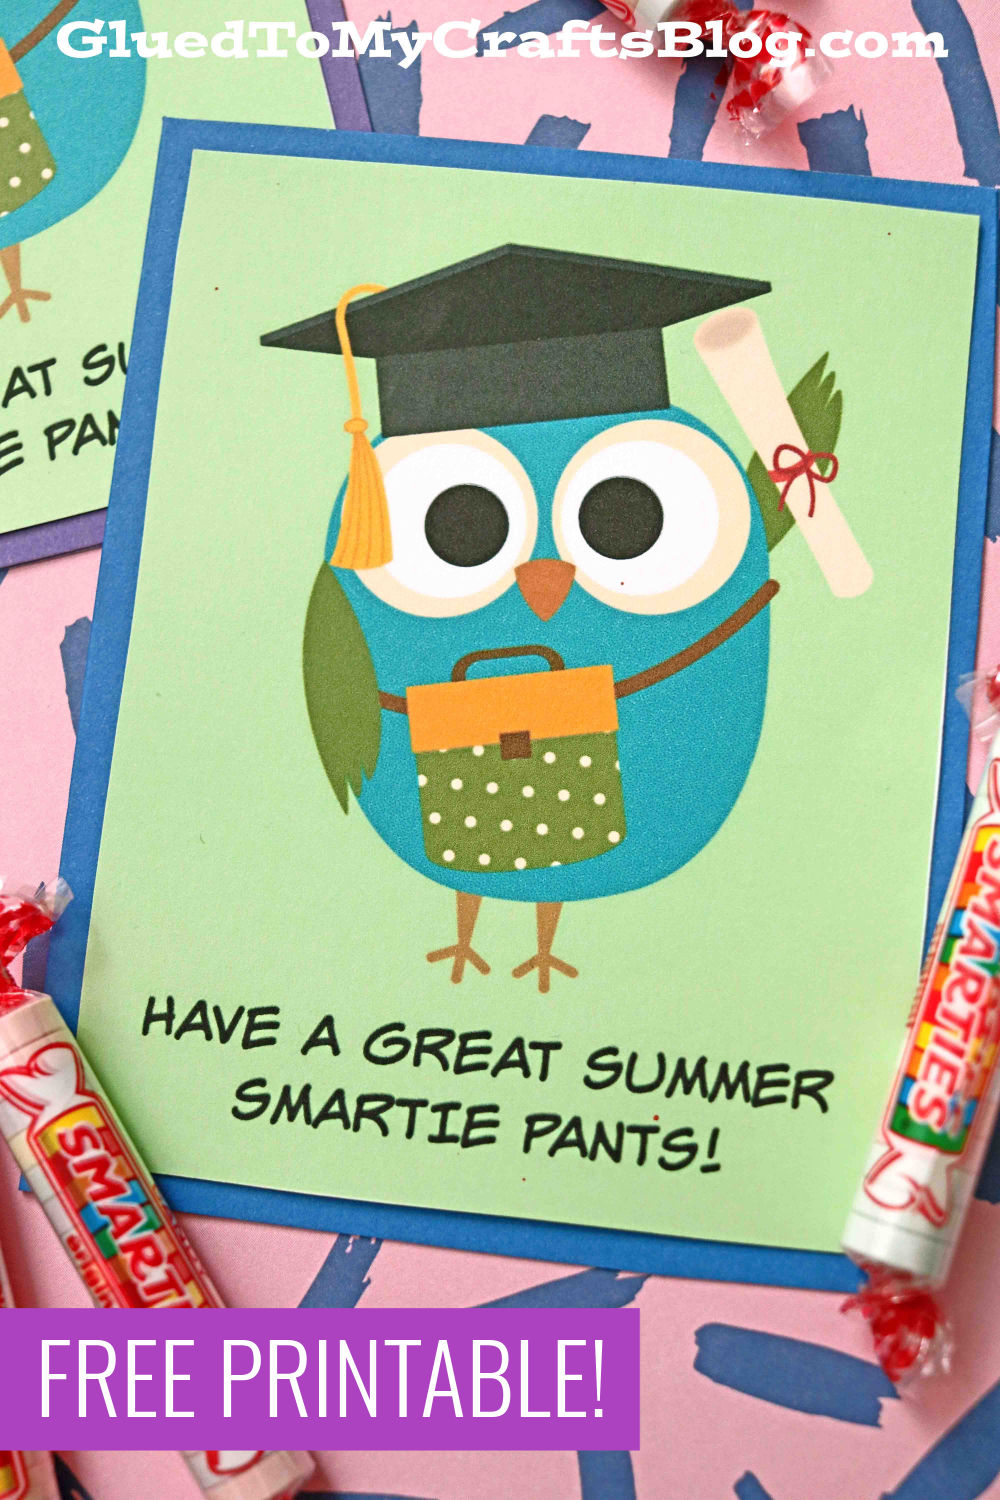 Have A Great Summer Smartie Pants - Card Printable